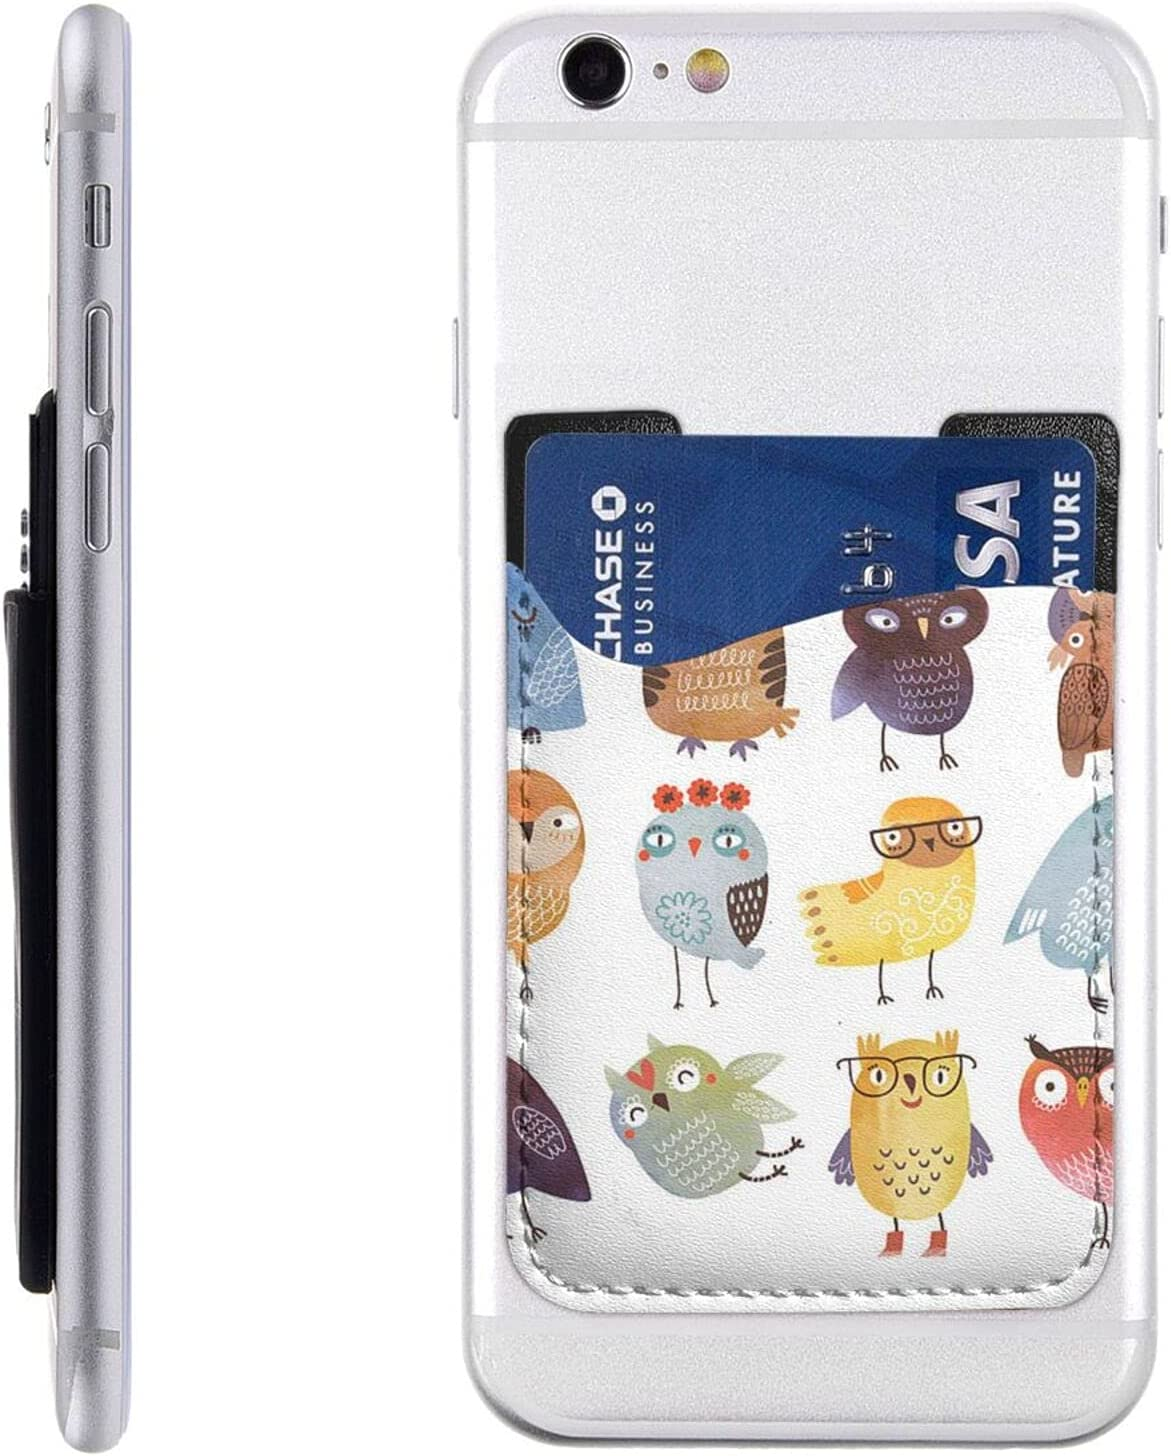 Safety and trust Owls Birds Phone Card Holder Stick Wallet Columbus Mall Cell On Sle